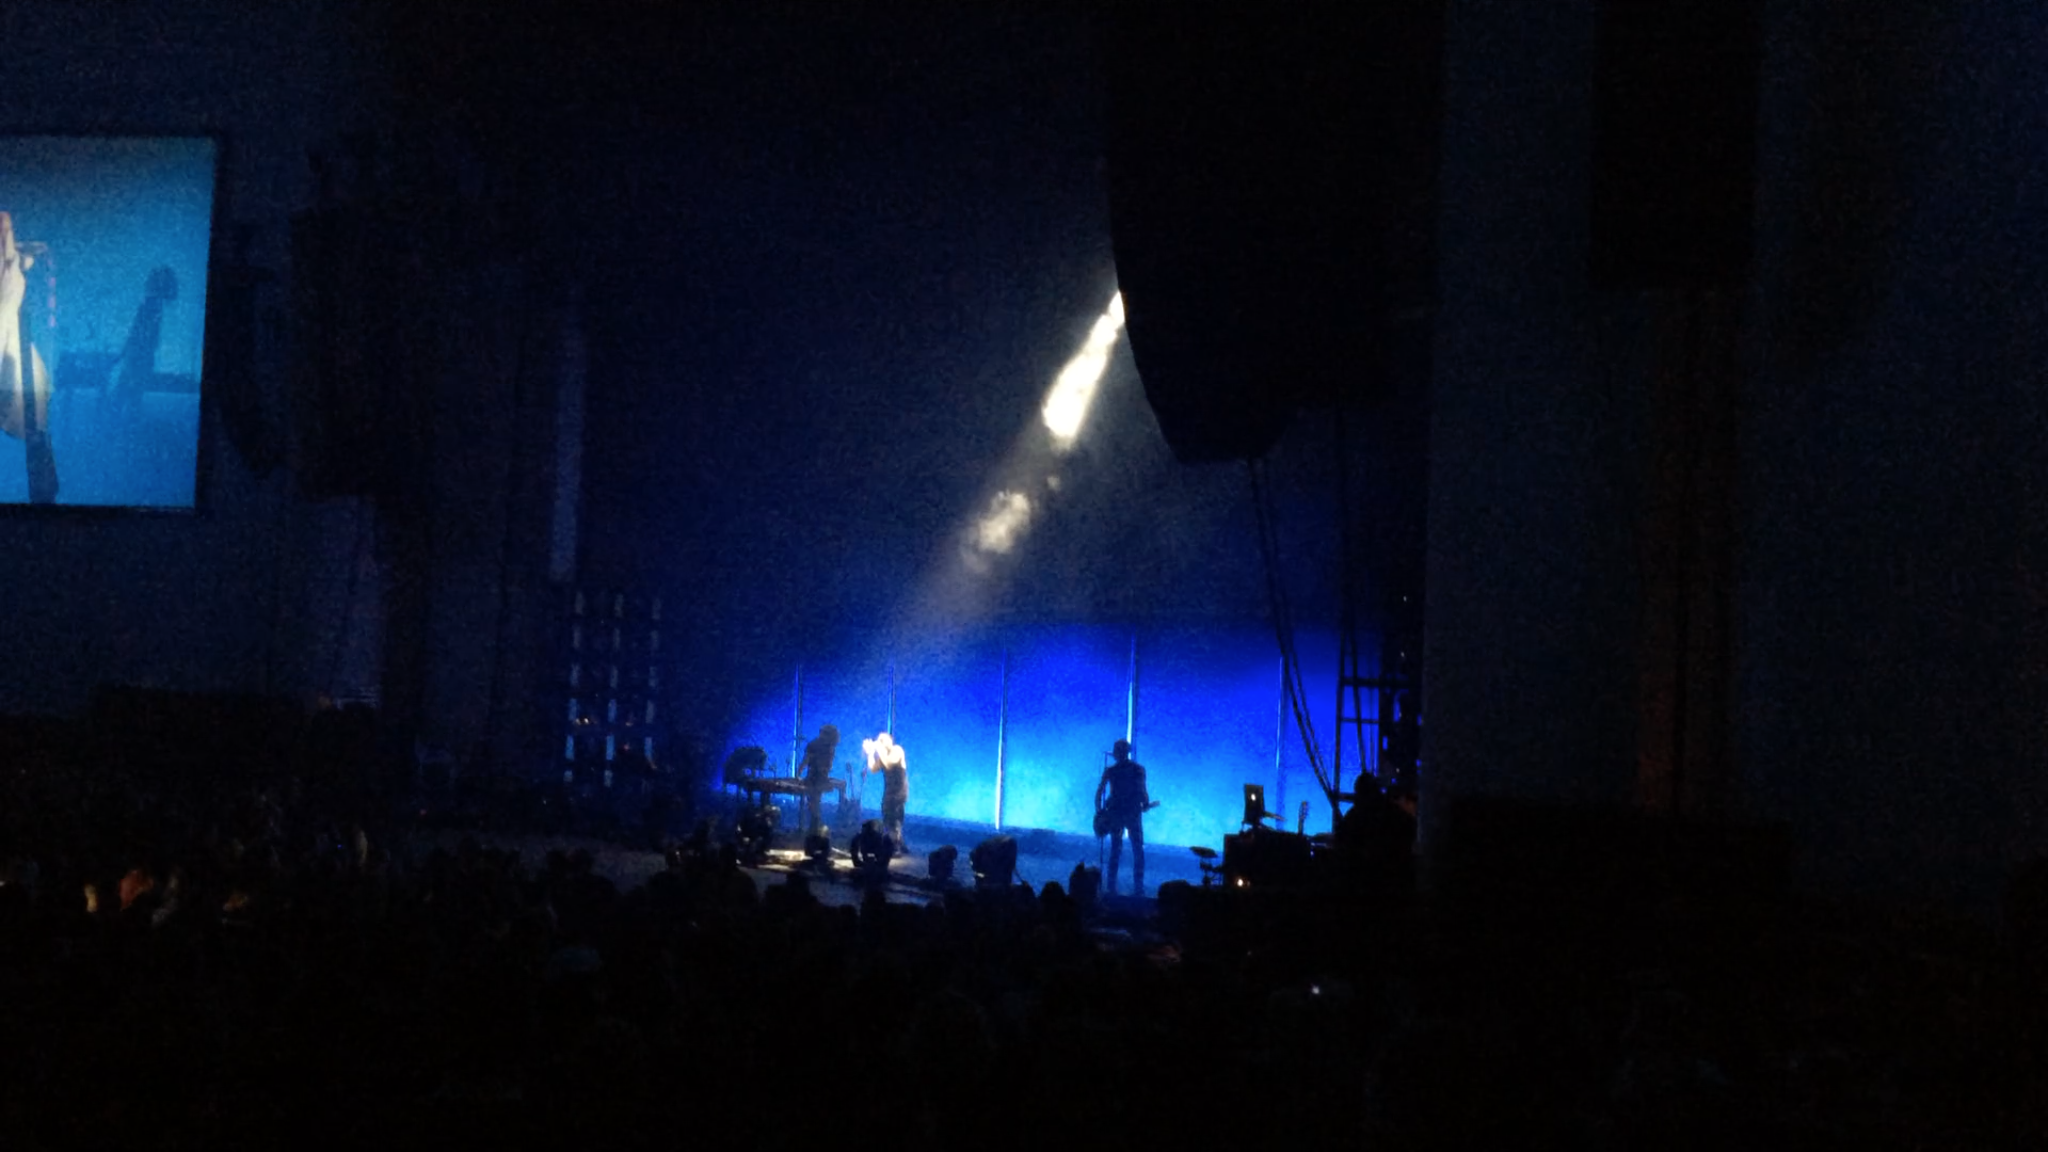 Nine Inch Nails - PNC Bank Arts Center - Gigs - Reviews - Soundblab